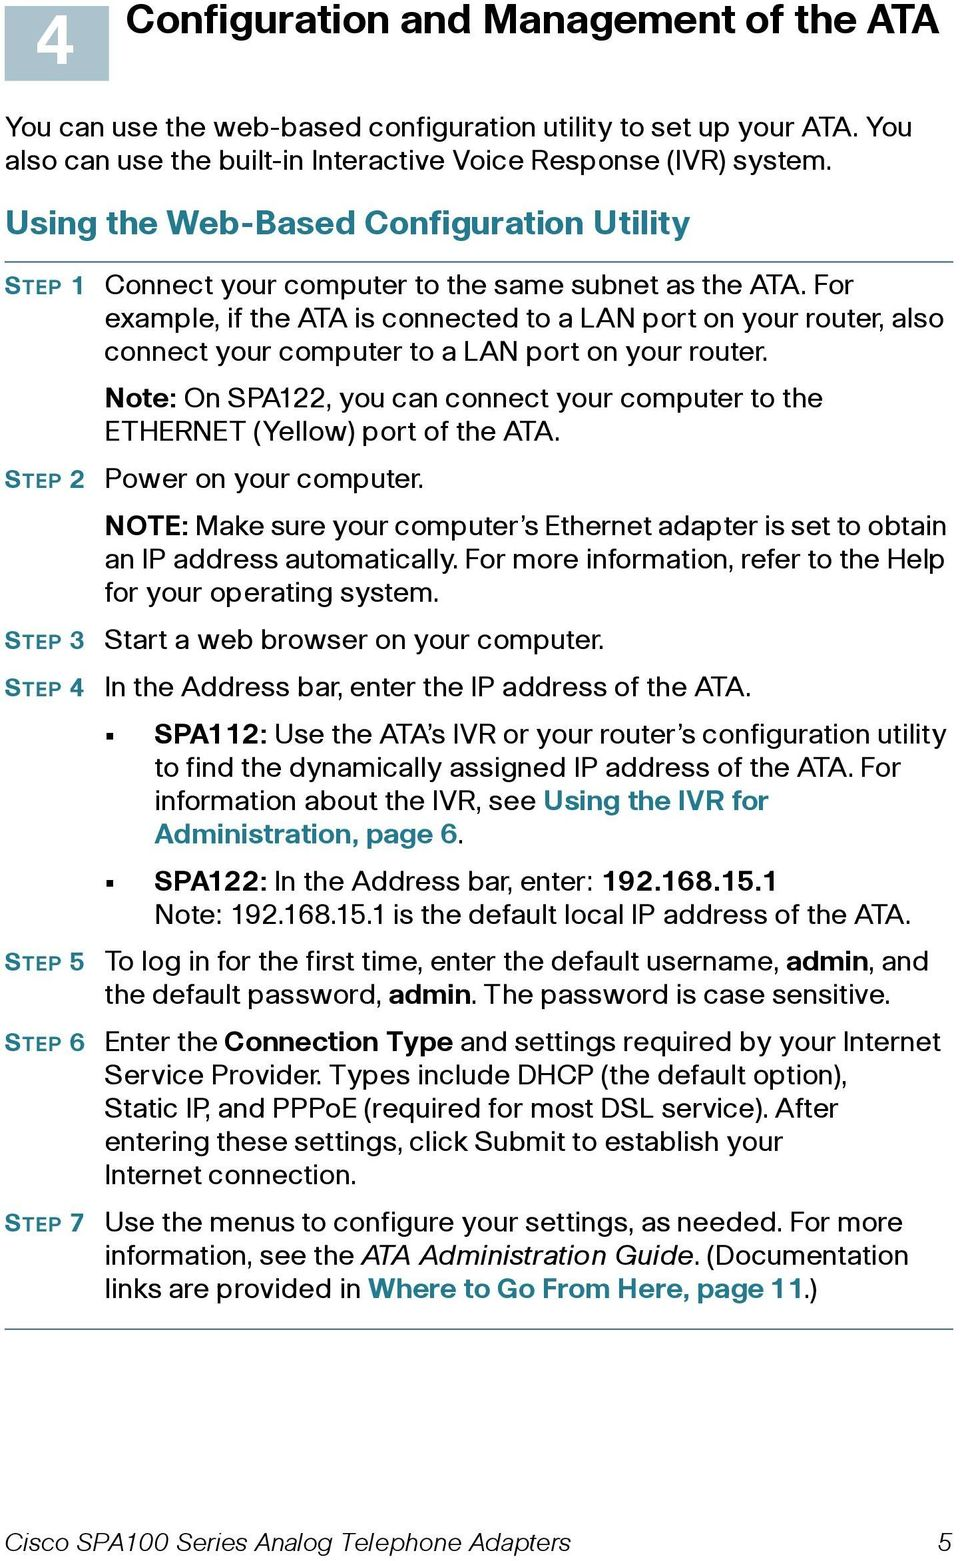 For example, if the ATA is connected to a LAN port on your router, also connect your computer to a LAN port on your router.